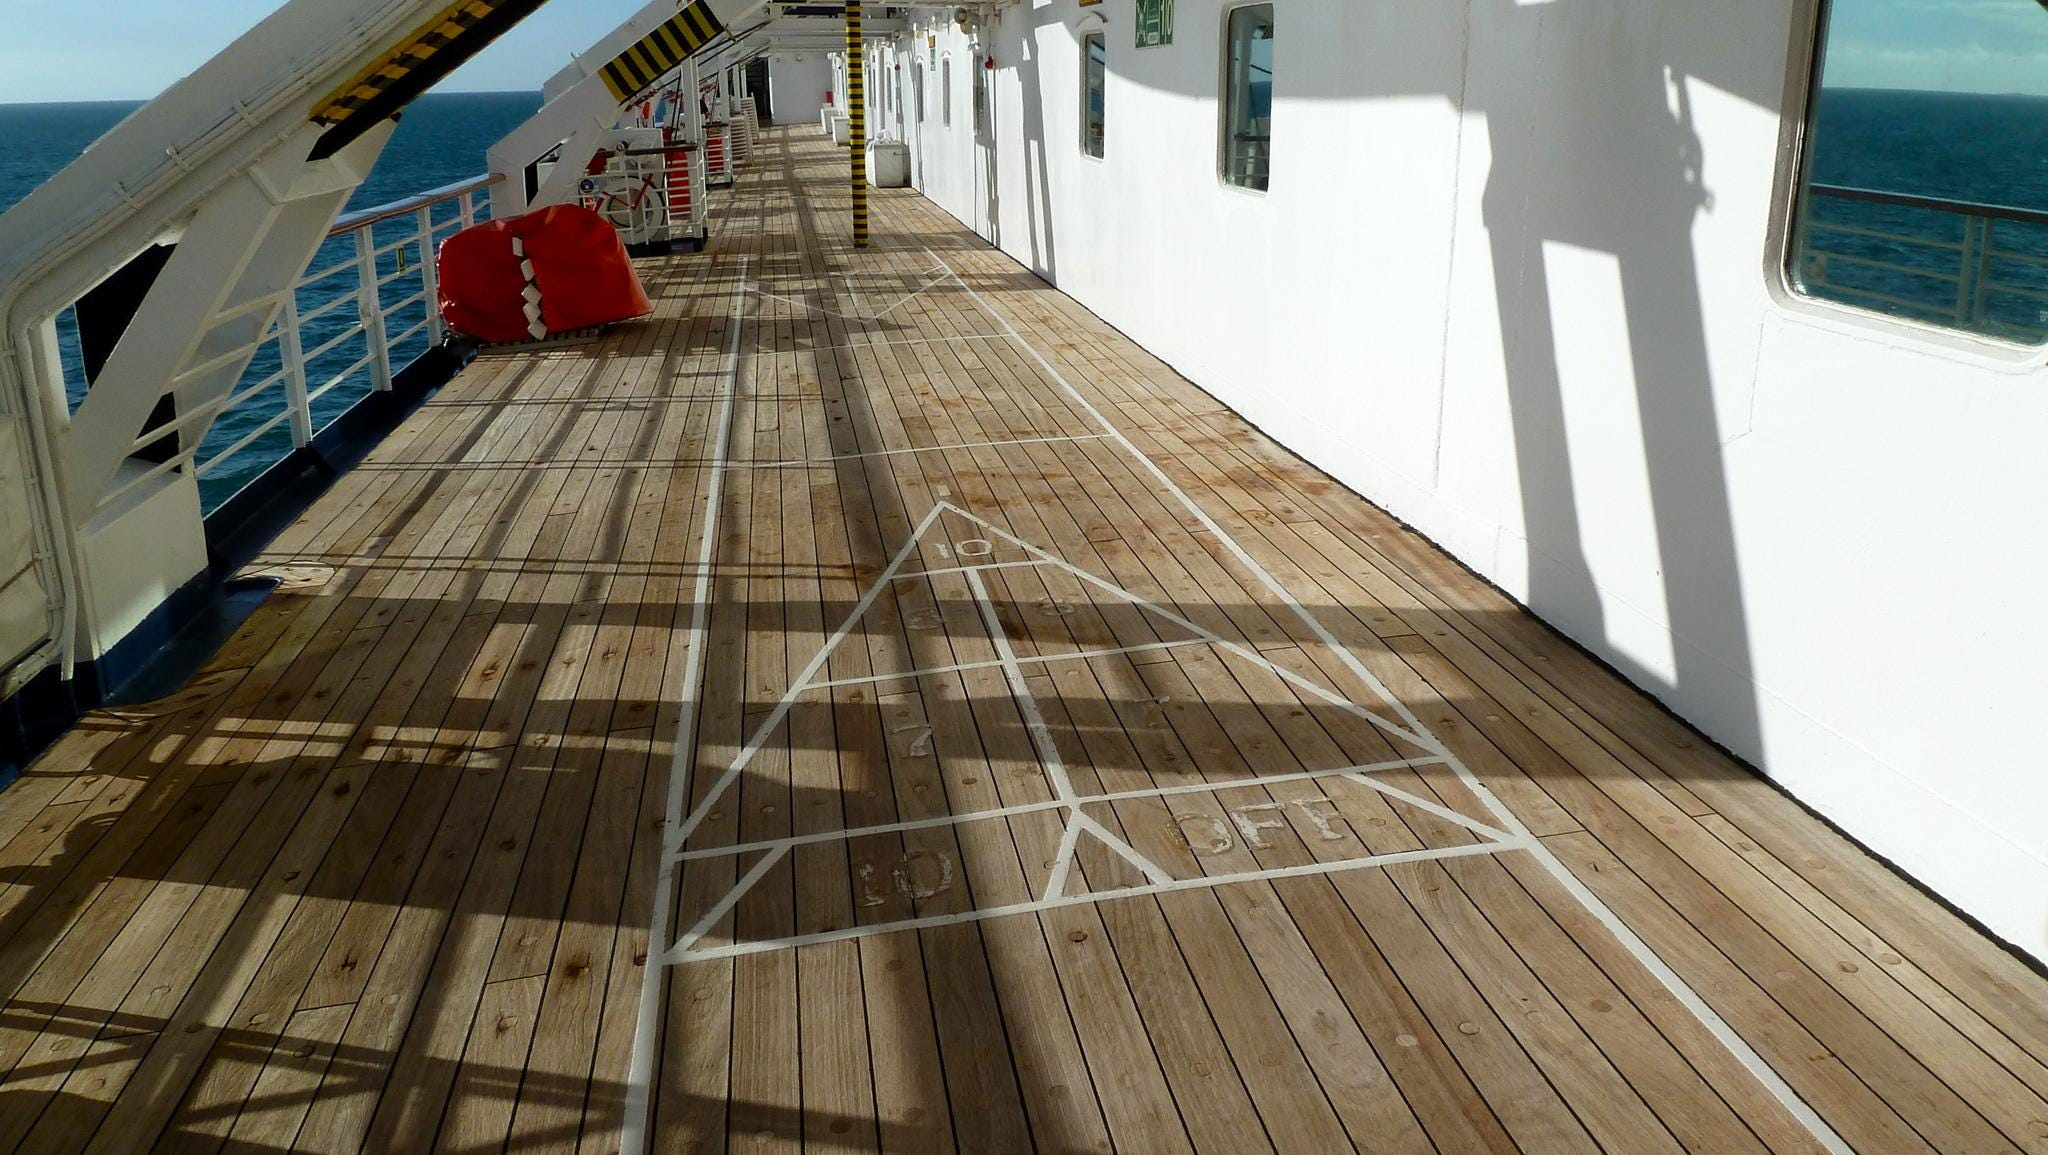 On Amundsen Deck, Marco Polo has inviting, open-air teak promenades under a canopy of lifeboats.